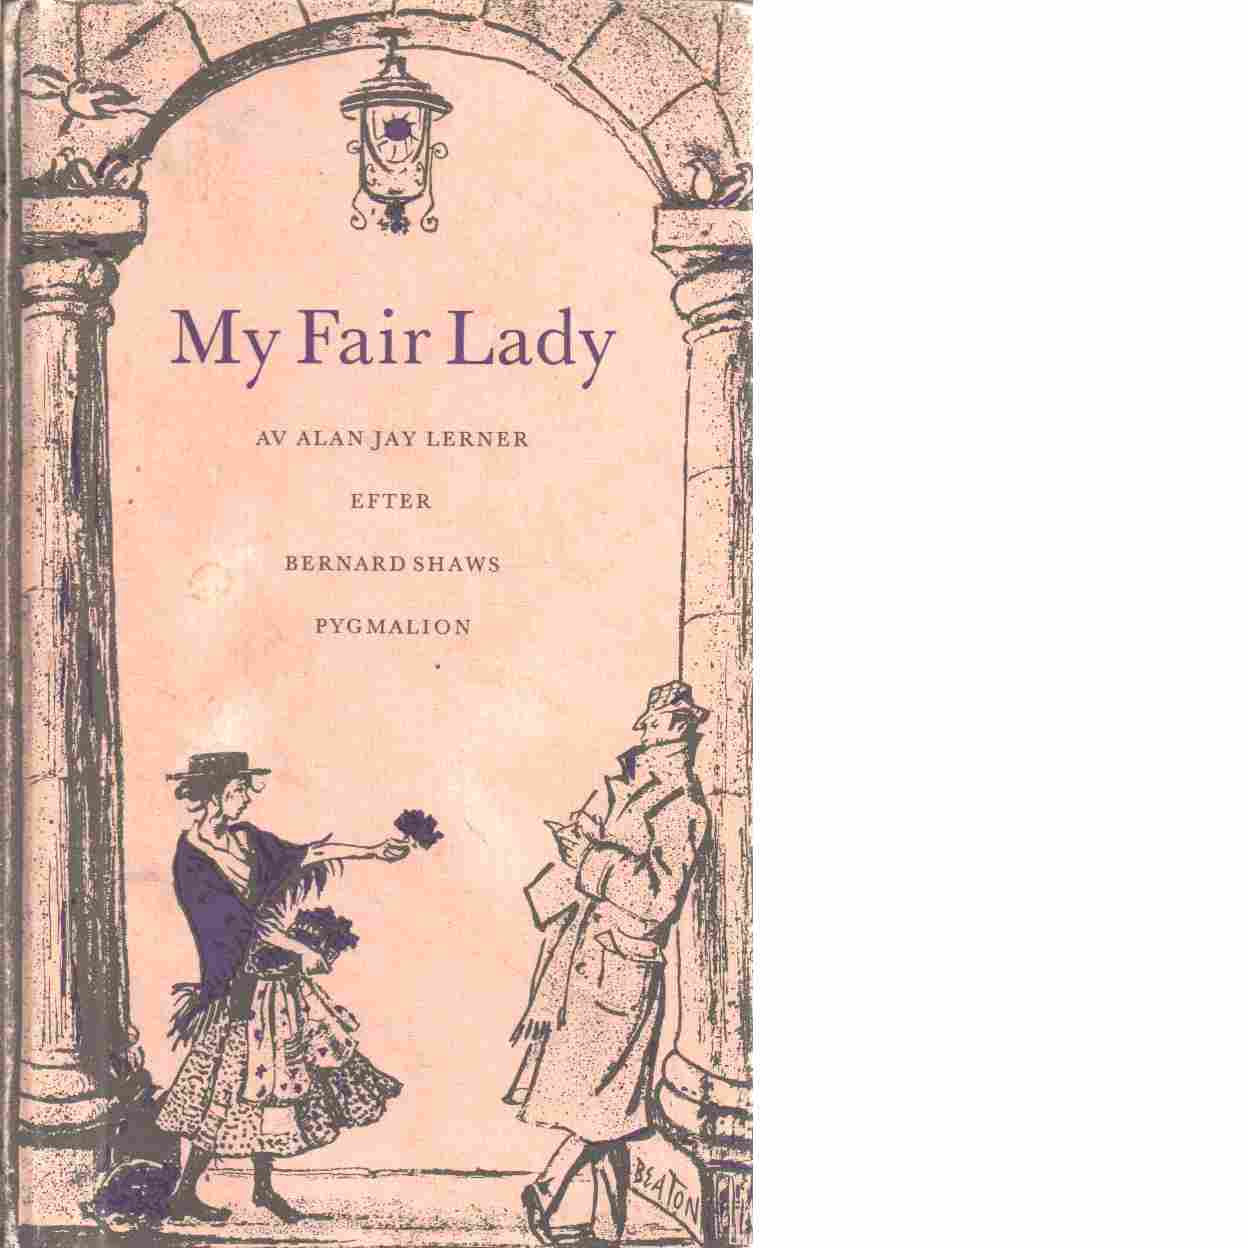 My fair lady - Lerner, Alan Jay